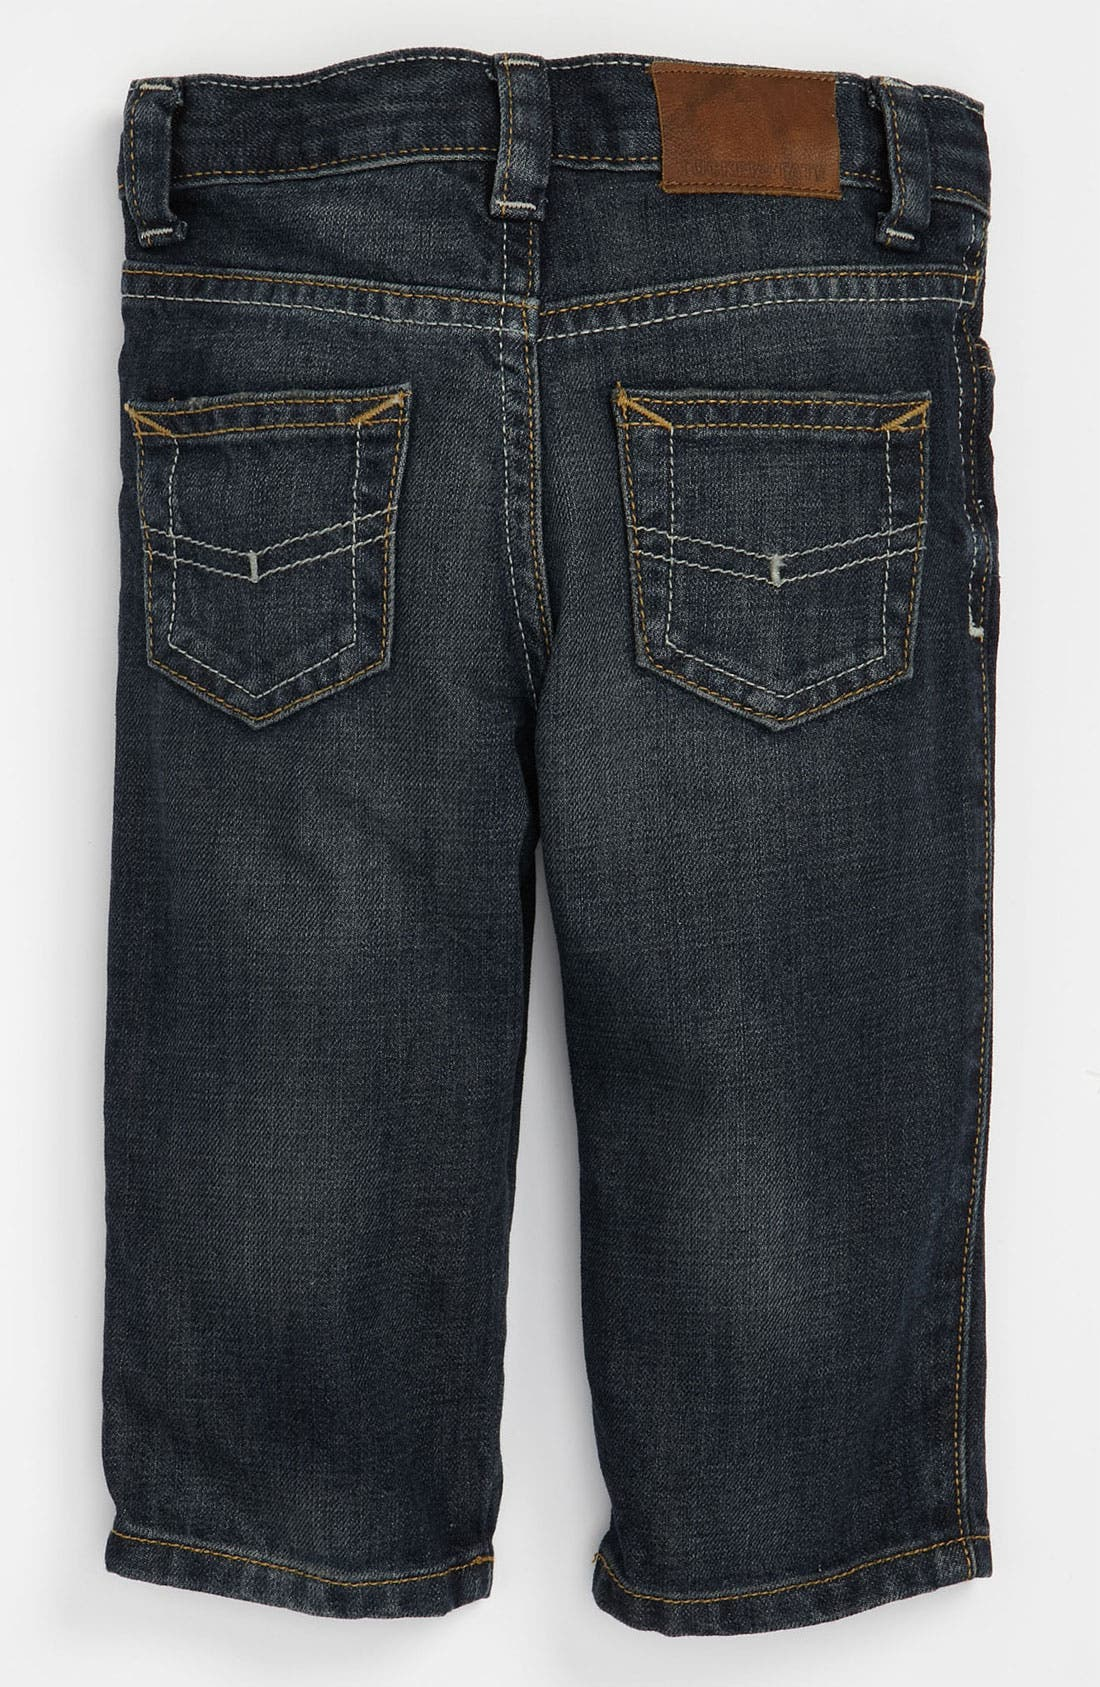 Alternate Image 1 Selected - Tucker + Tate 'Tucker' Jeans (Infant)